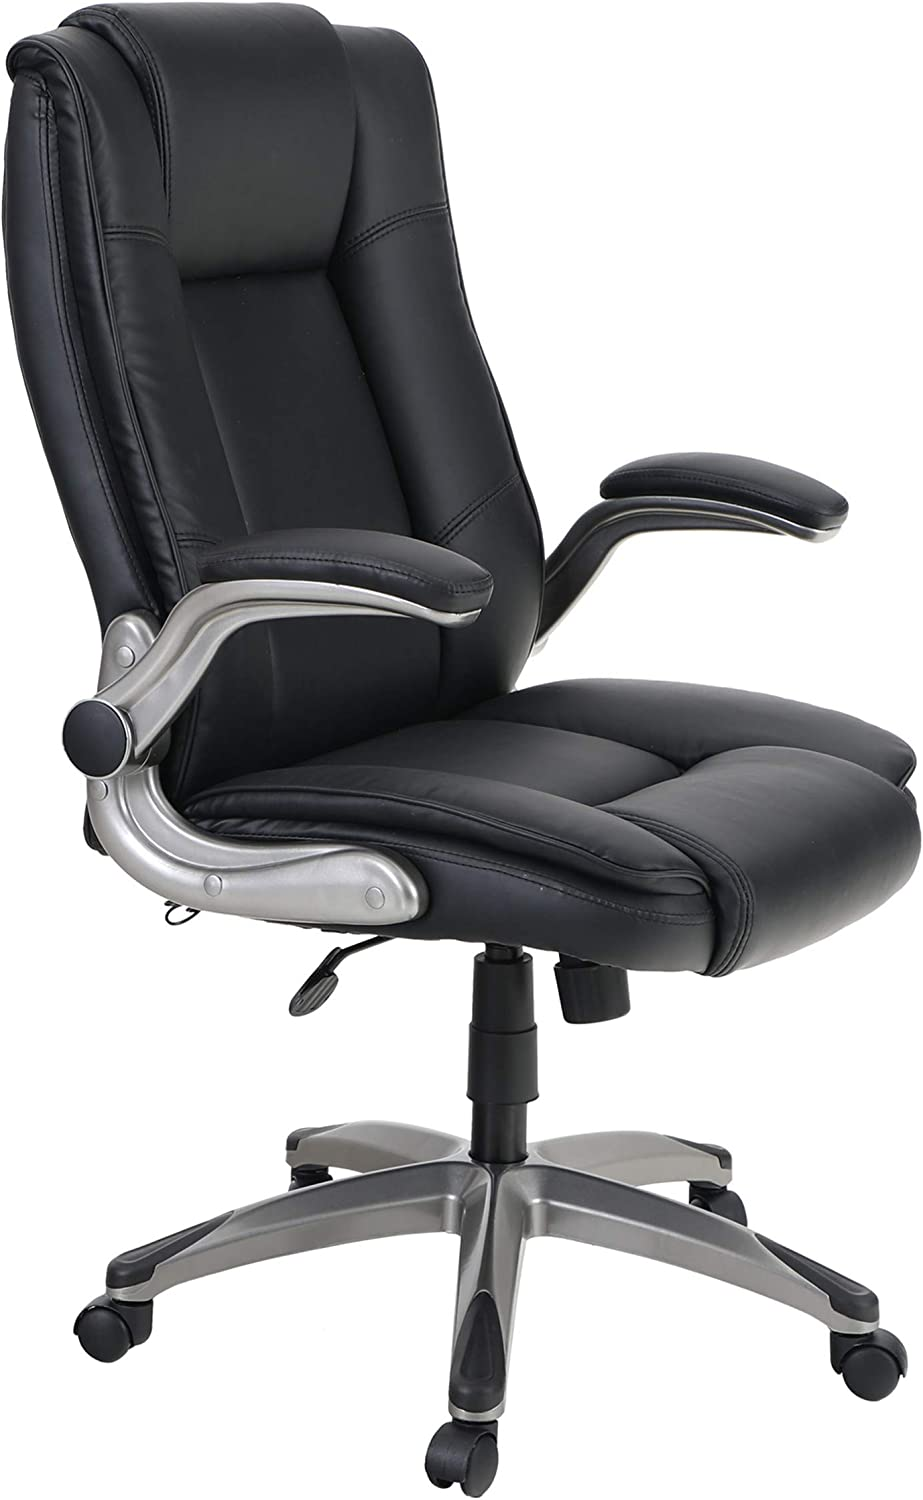 Sophia & William PU Leather Rocking Home Office Desk Chair High Back, Modern 360° Swivel Executive Computer Chair with Flip-up Armrests, Load Capacity: 300 lbs